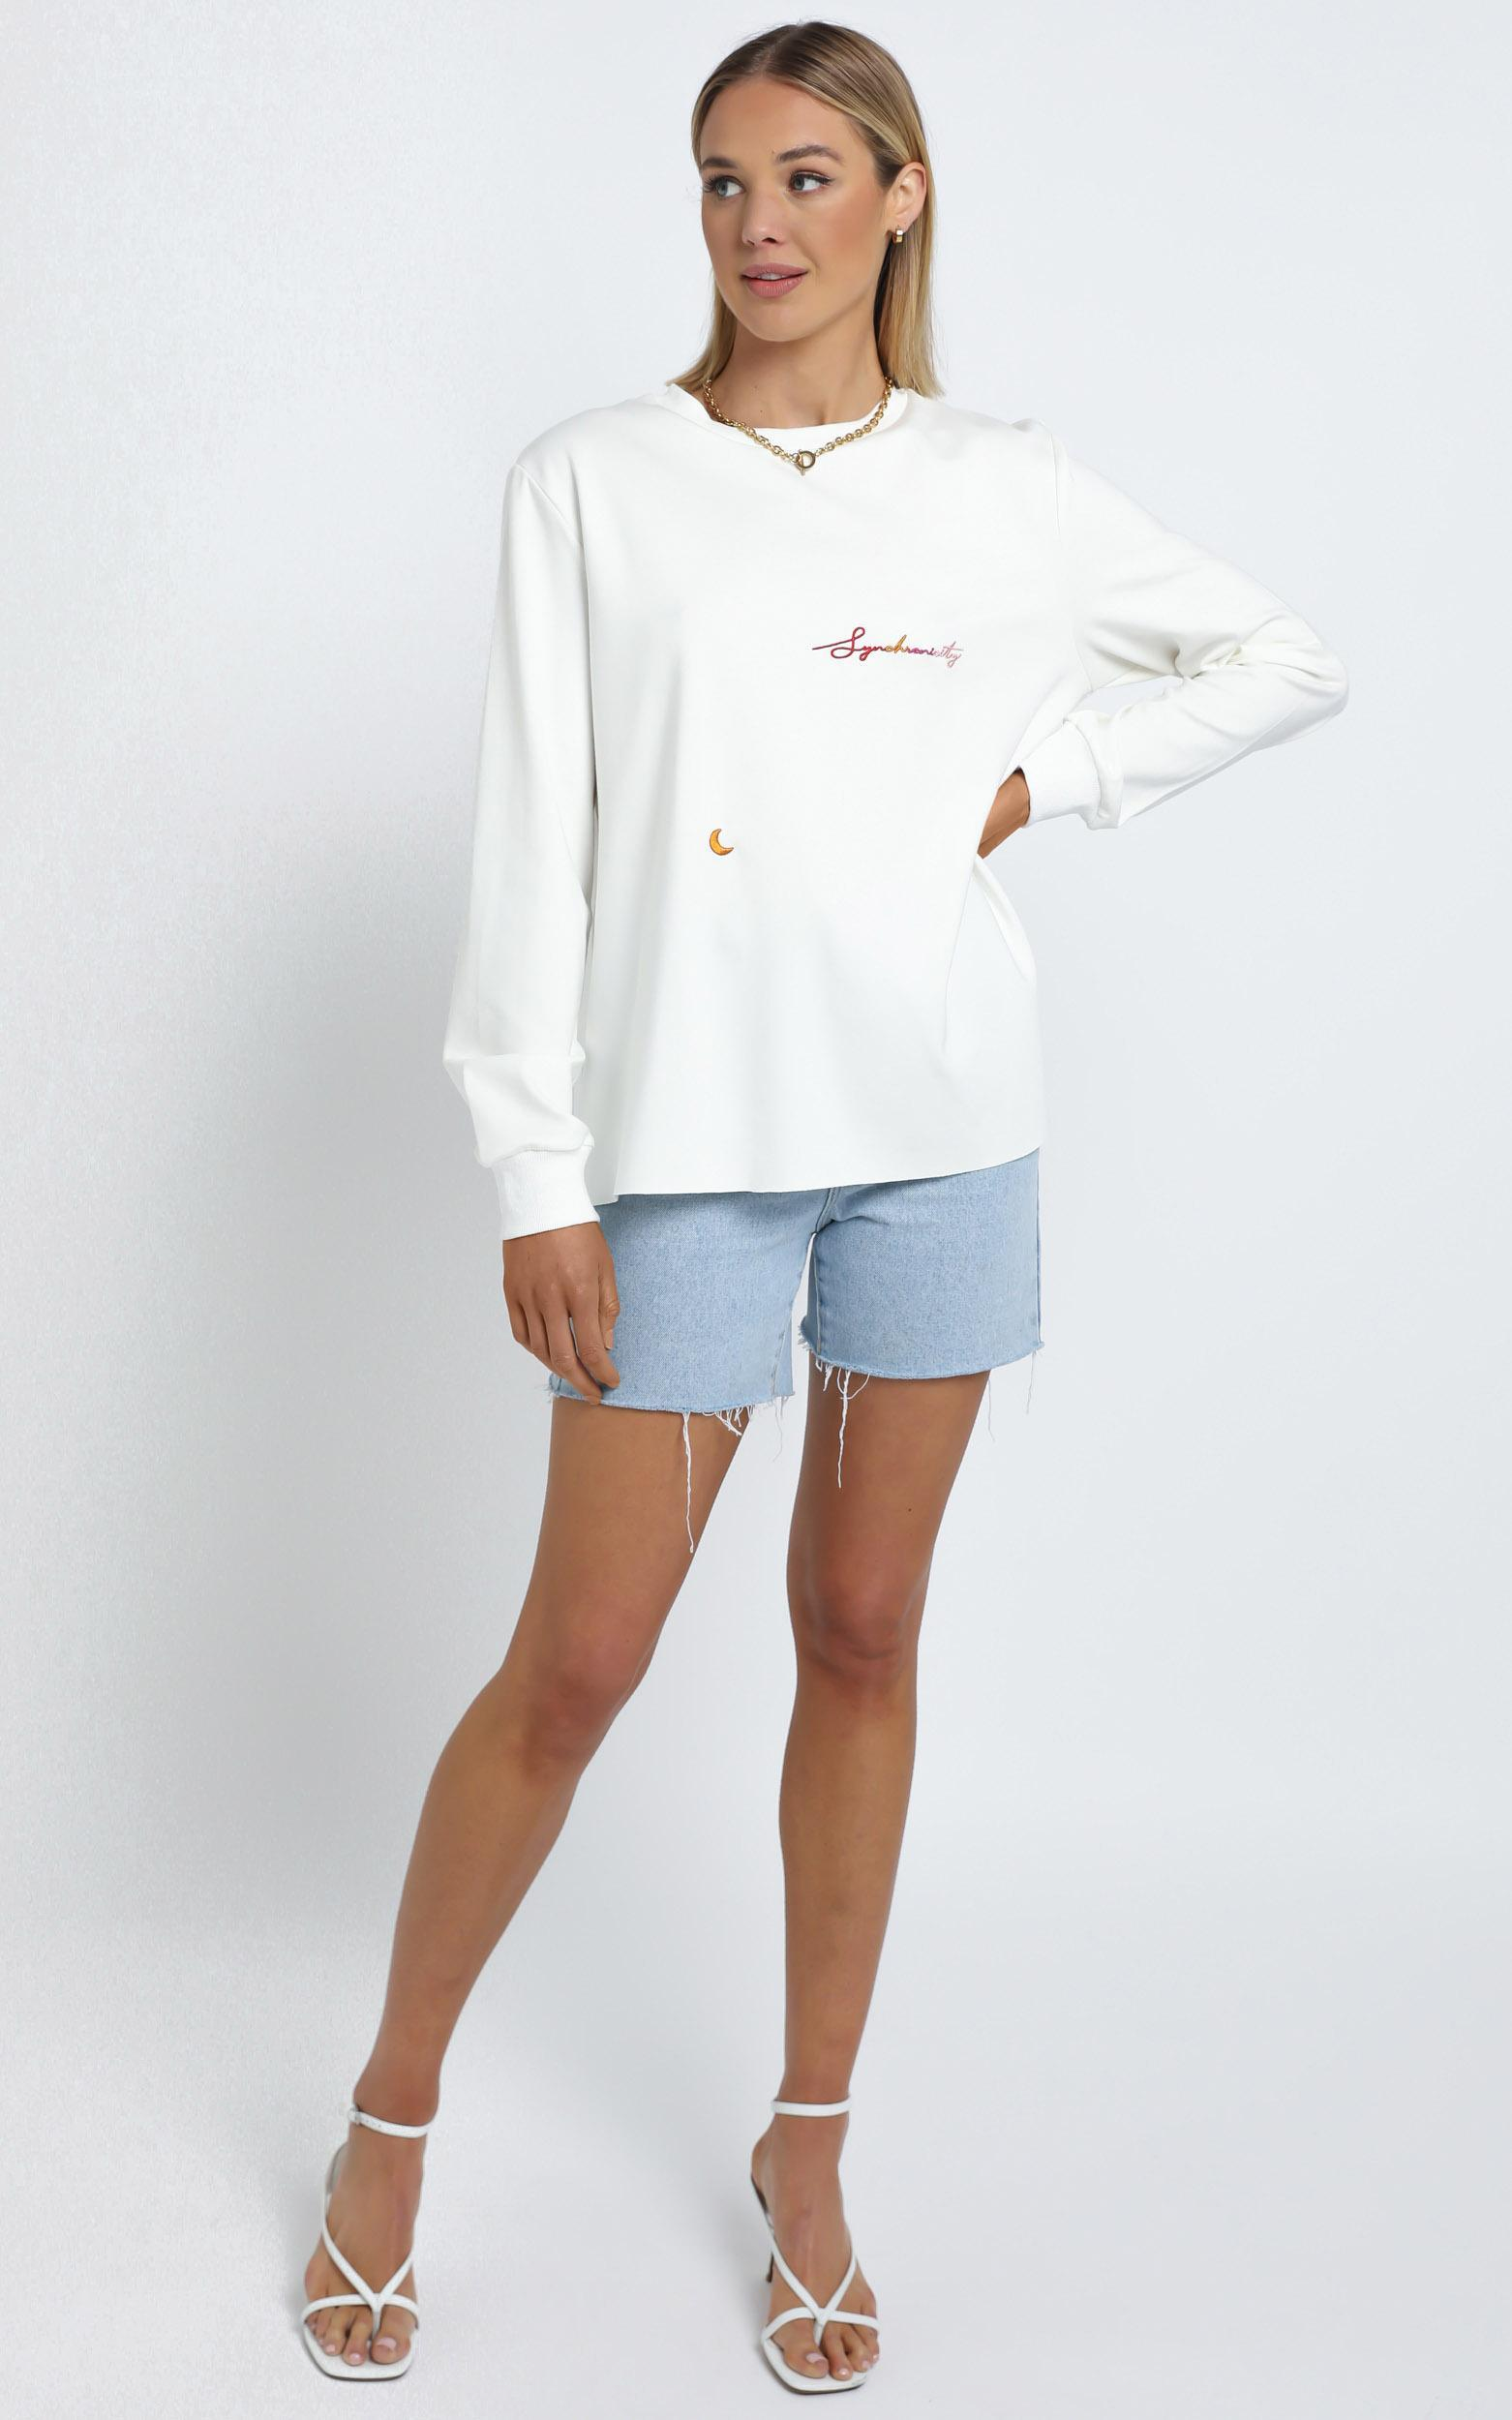 Zya The Label - Synchronicity Top in White - 14 (XL), White, hi-res image number null